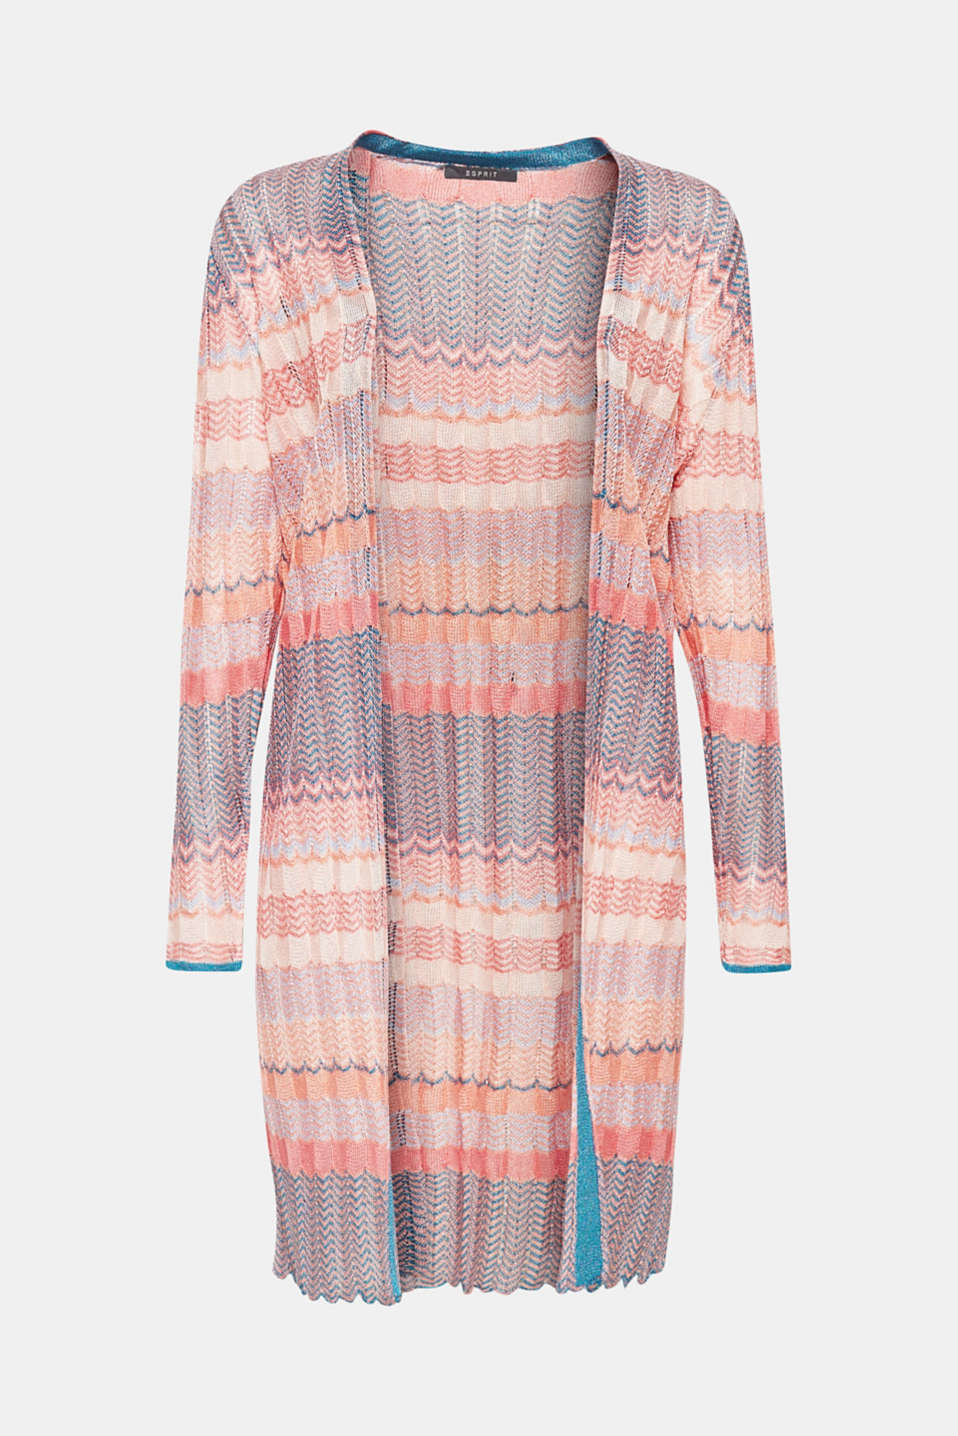 Summery designer chic: This open, softly flowing cardigan in airy openwork knit fabric with a colourful zigzag pattern is an especially decorative eye-catcher!